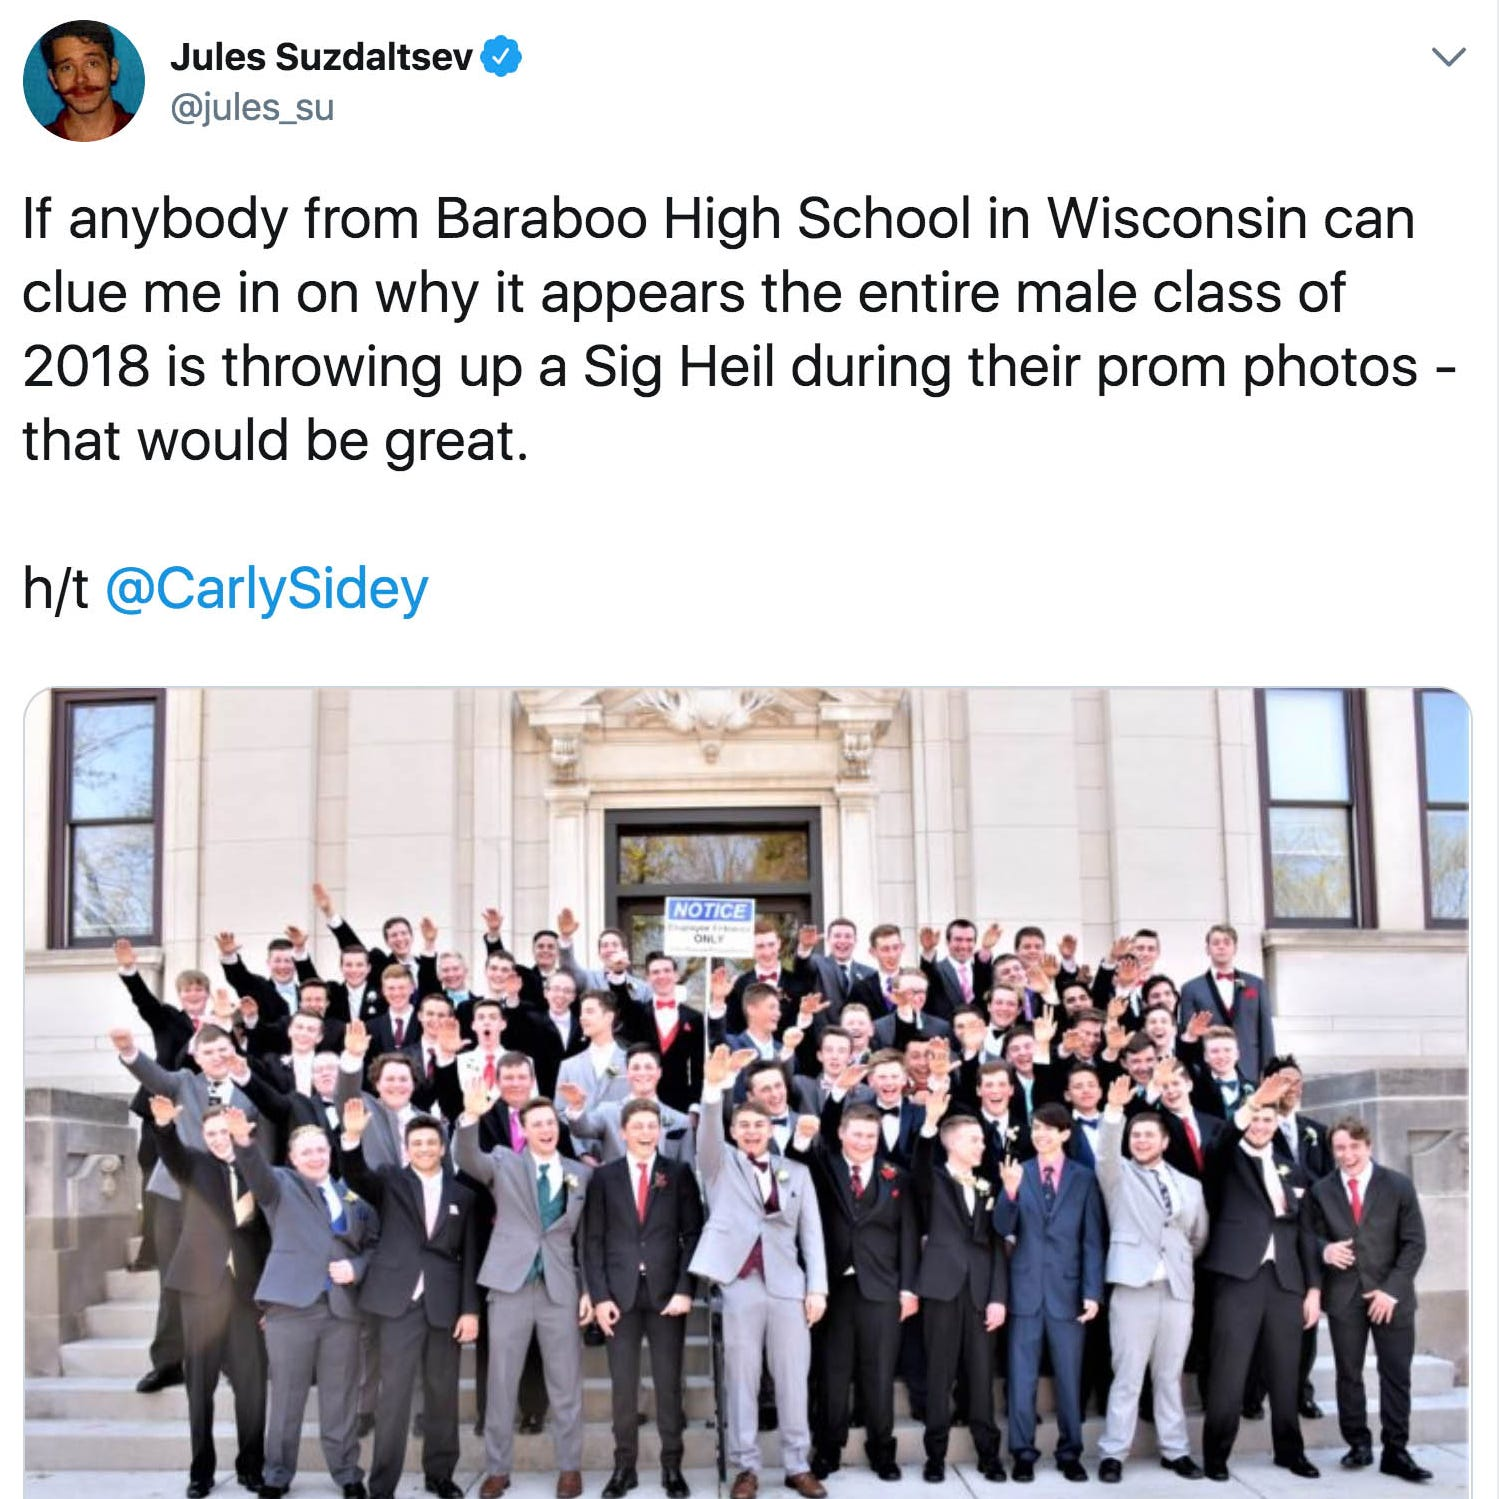 Baraboo school district condemns a photo showing a large group of students giving Nazi salute